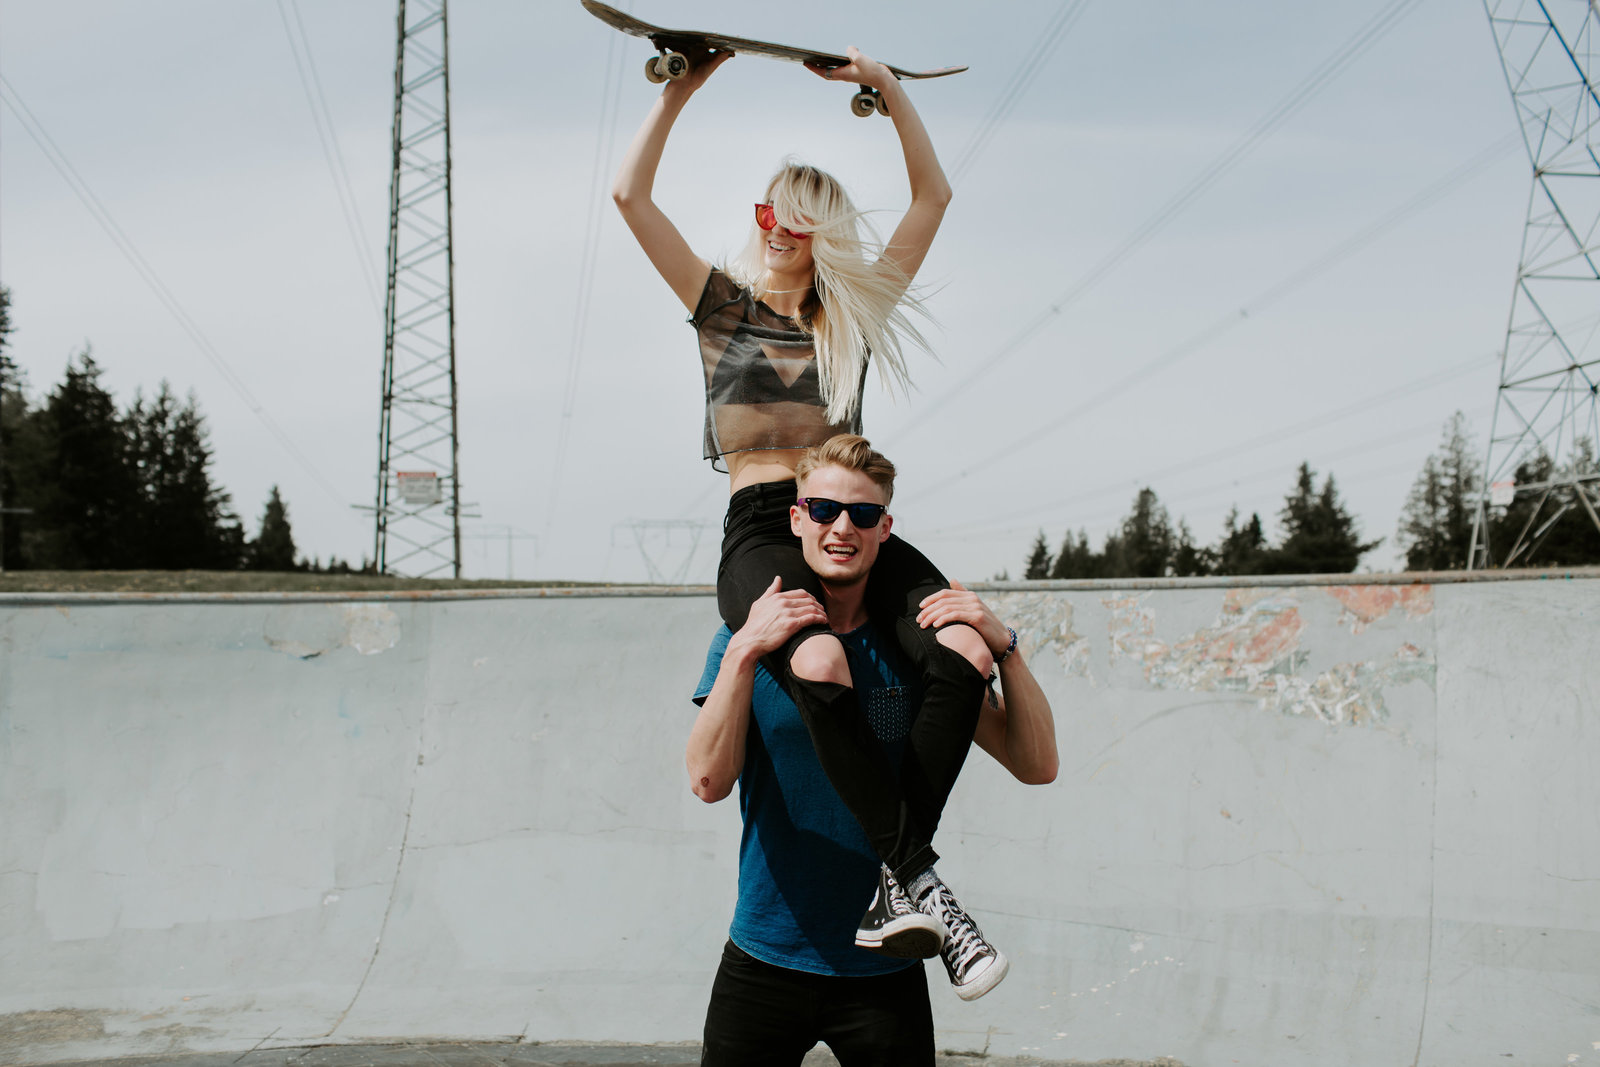 SKATE-PARK-ENGAGEMENT-MEGHAN-HEMSTRA-PHOTOGRAPHY-5